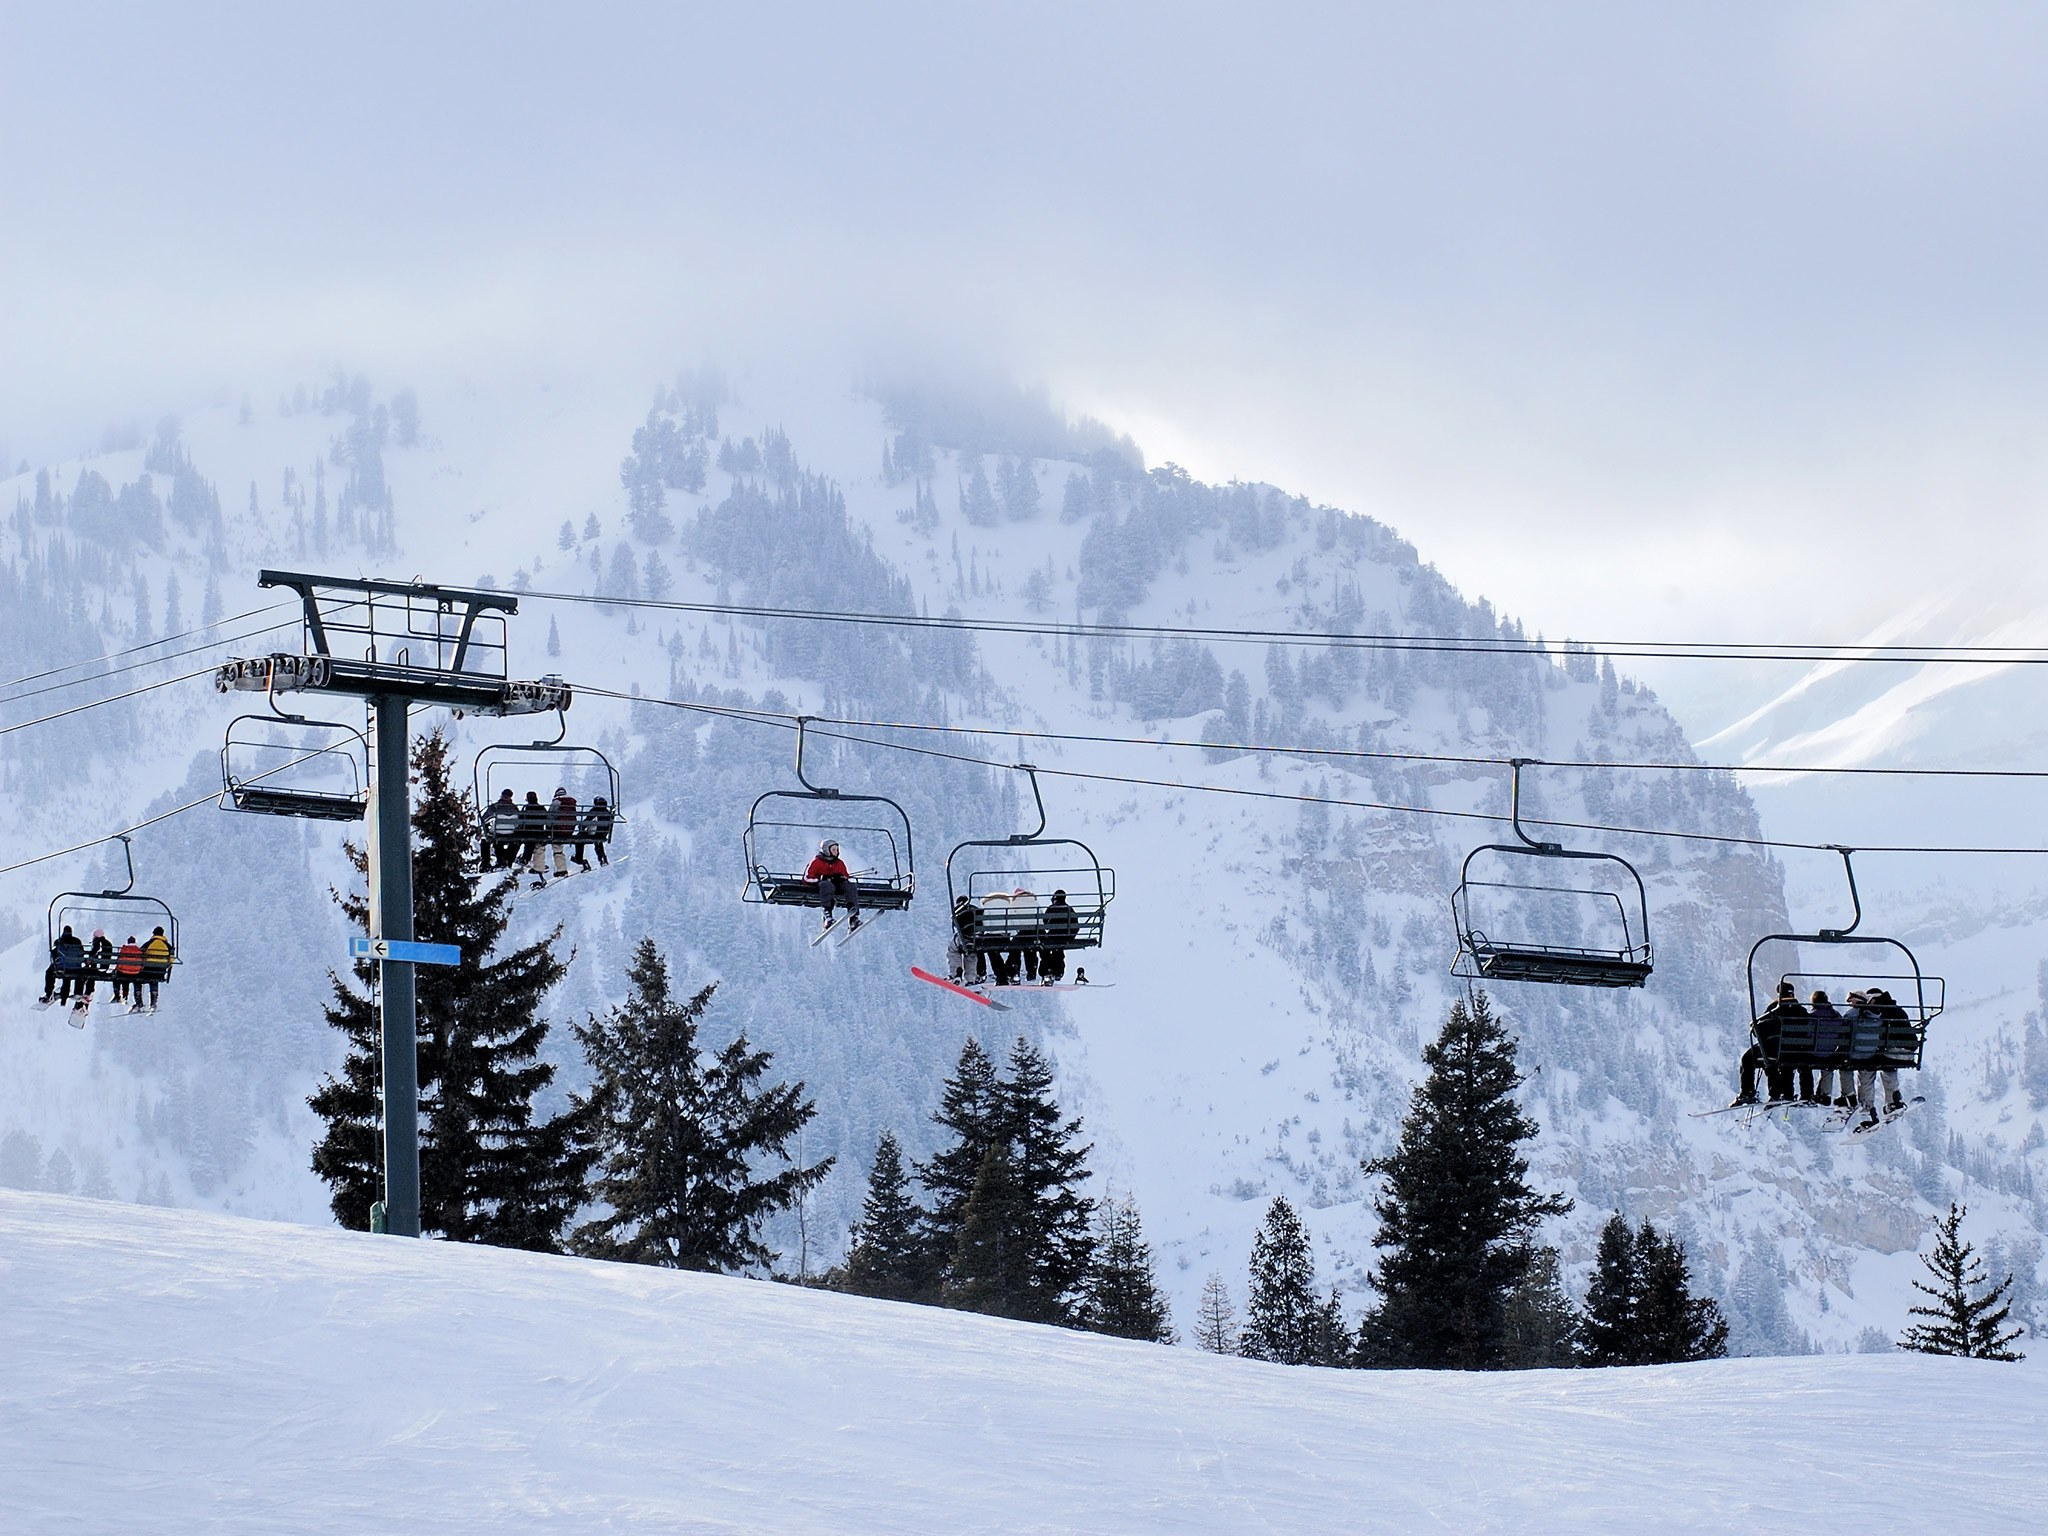 USA or European Ski Holiday? What's the Difference?